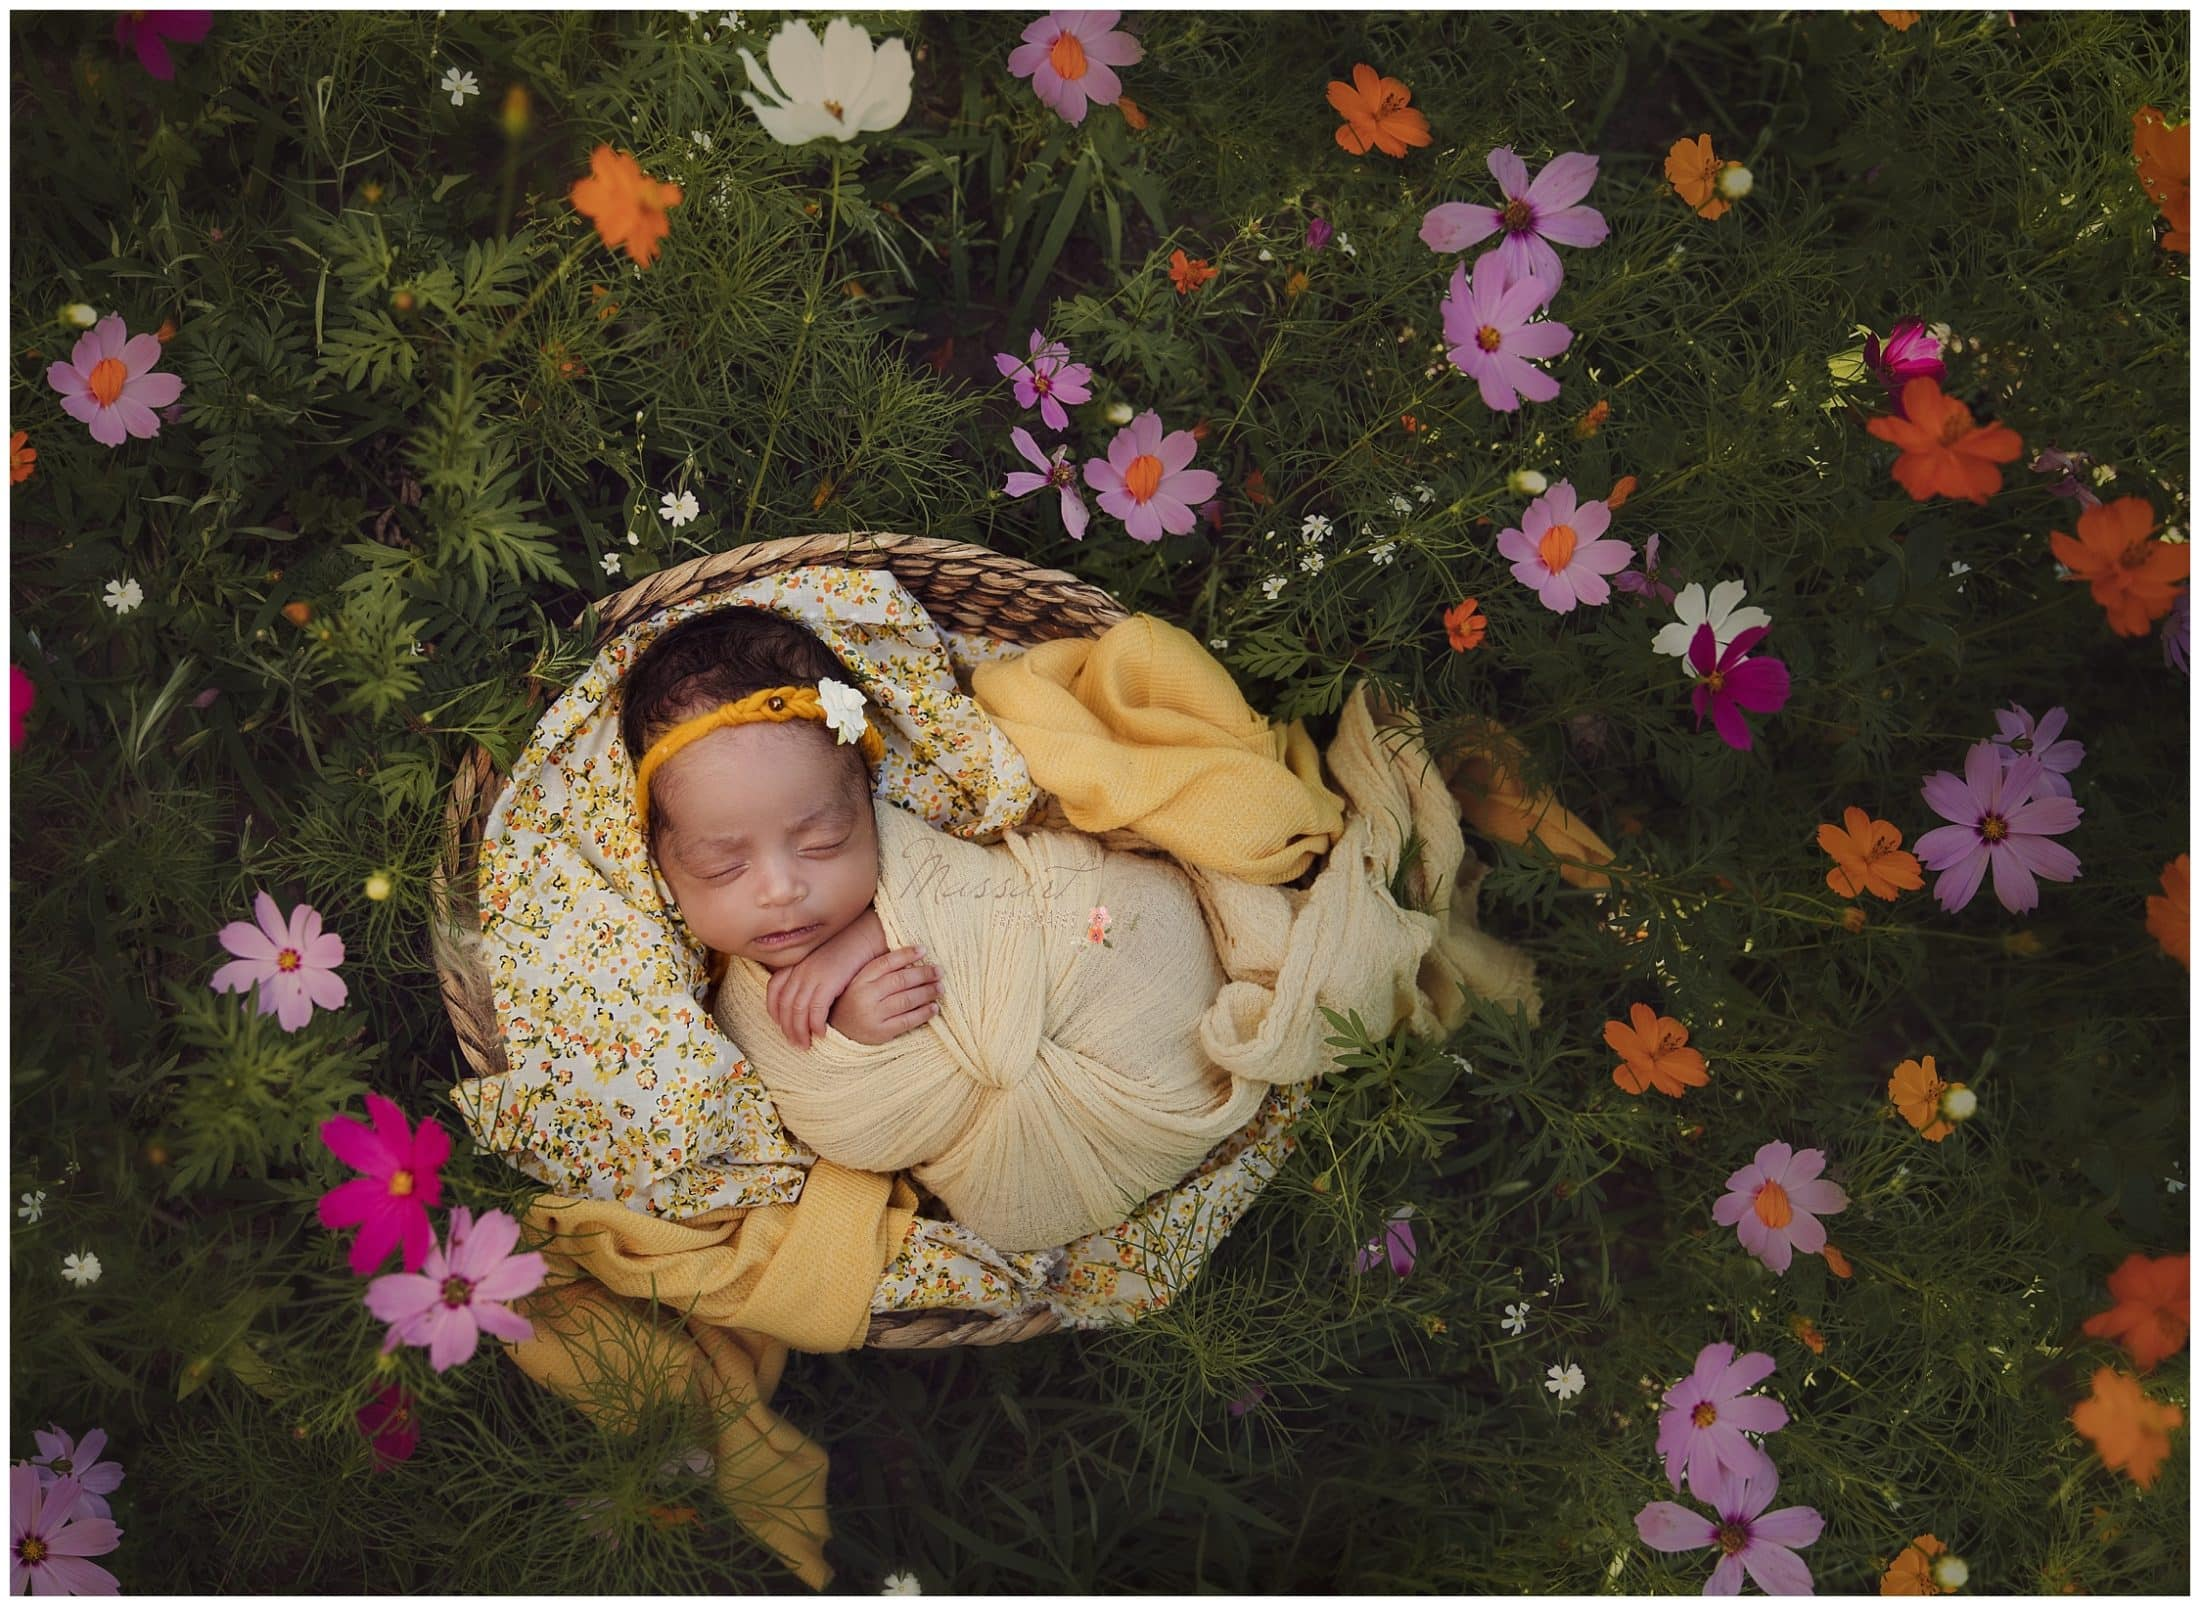 Baby girl in basket surrounded by colorful flowers during newborn session photographed by Massart Photography Rhode Island